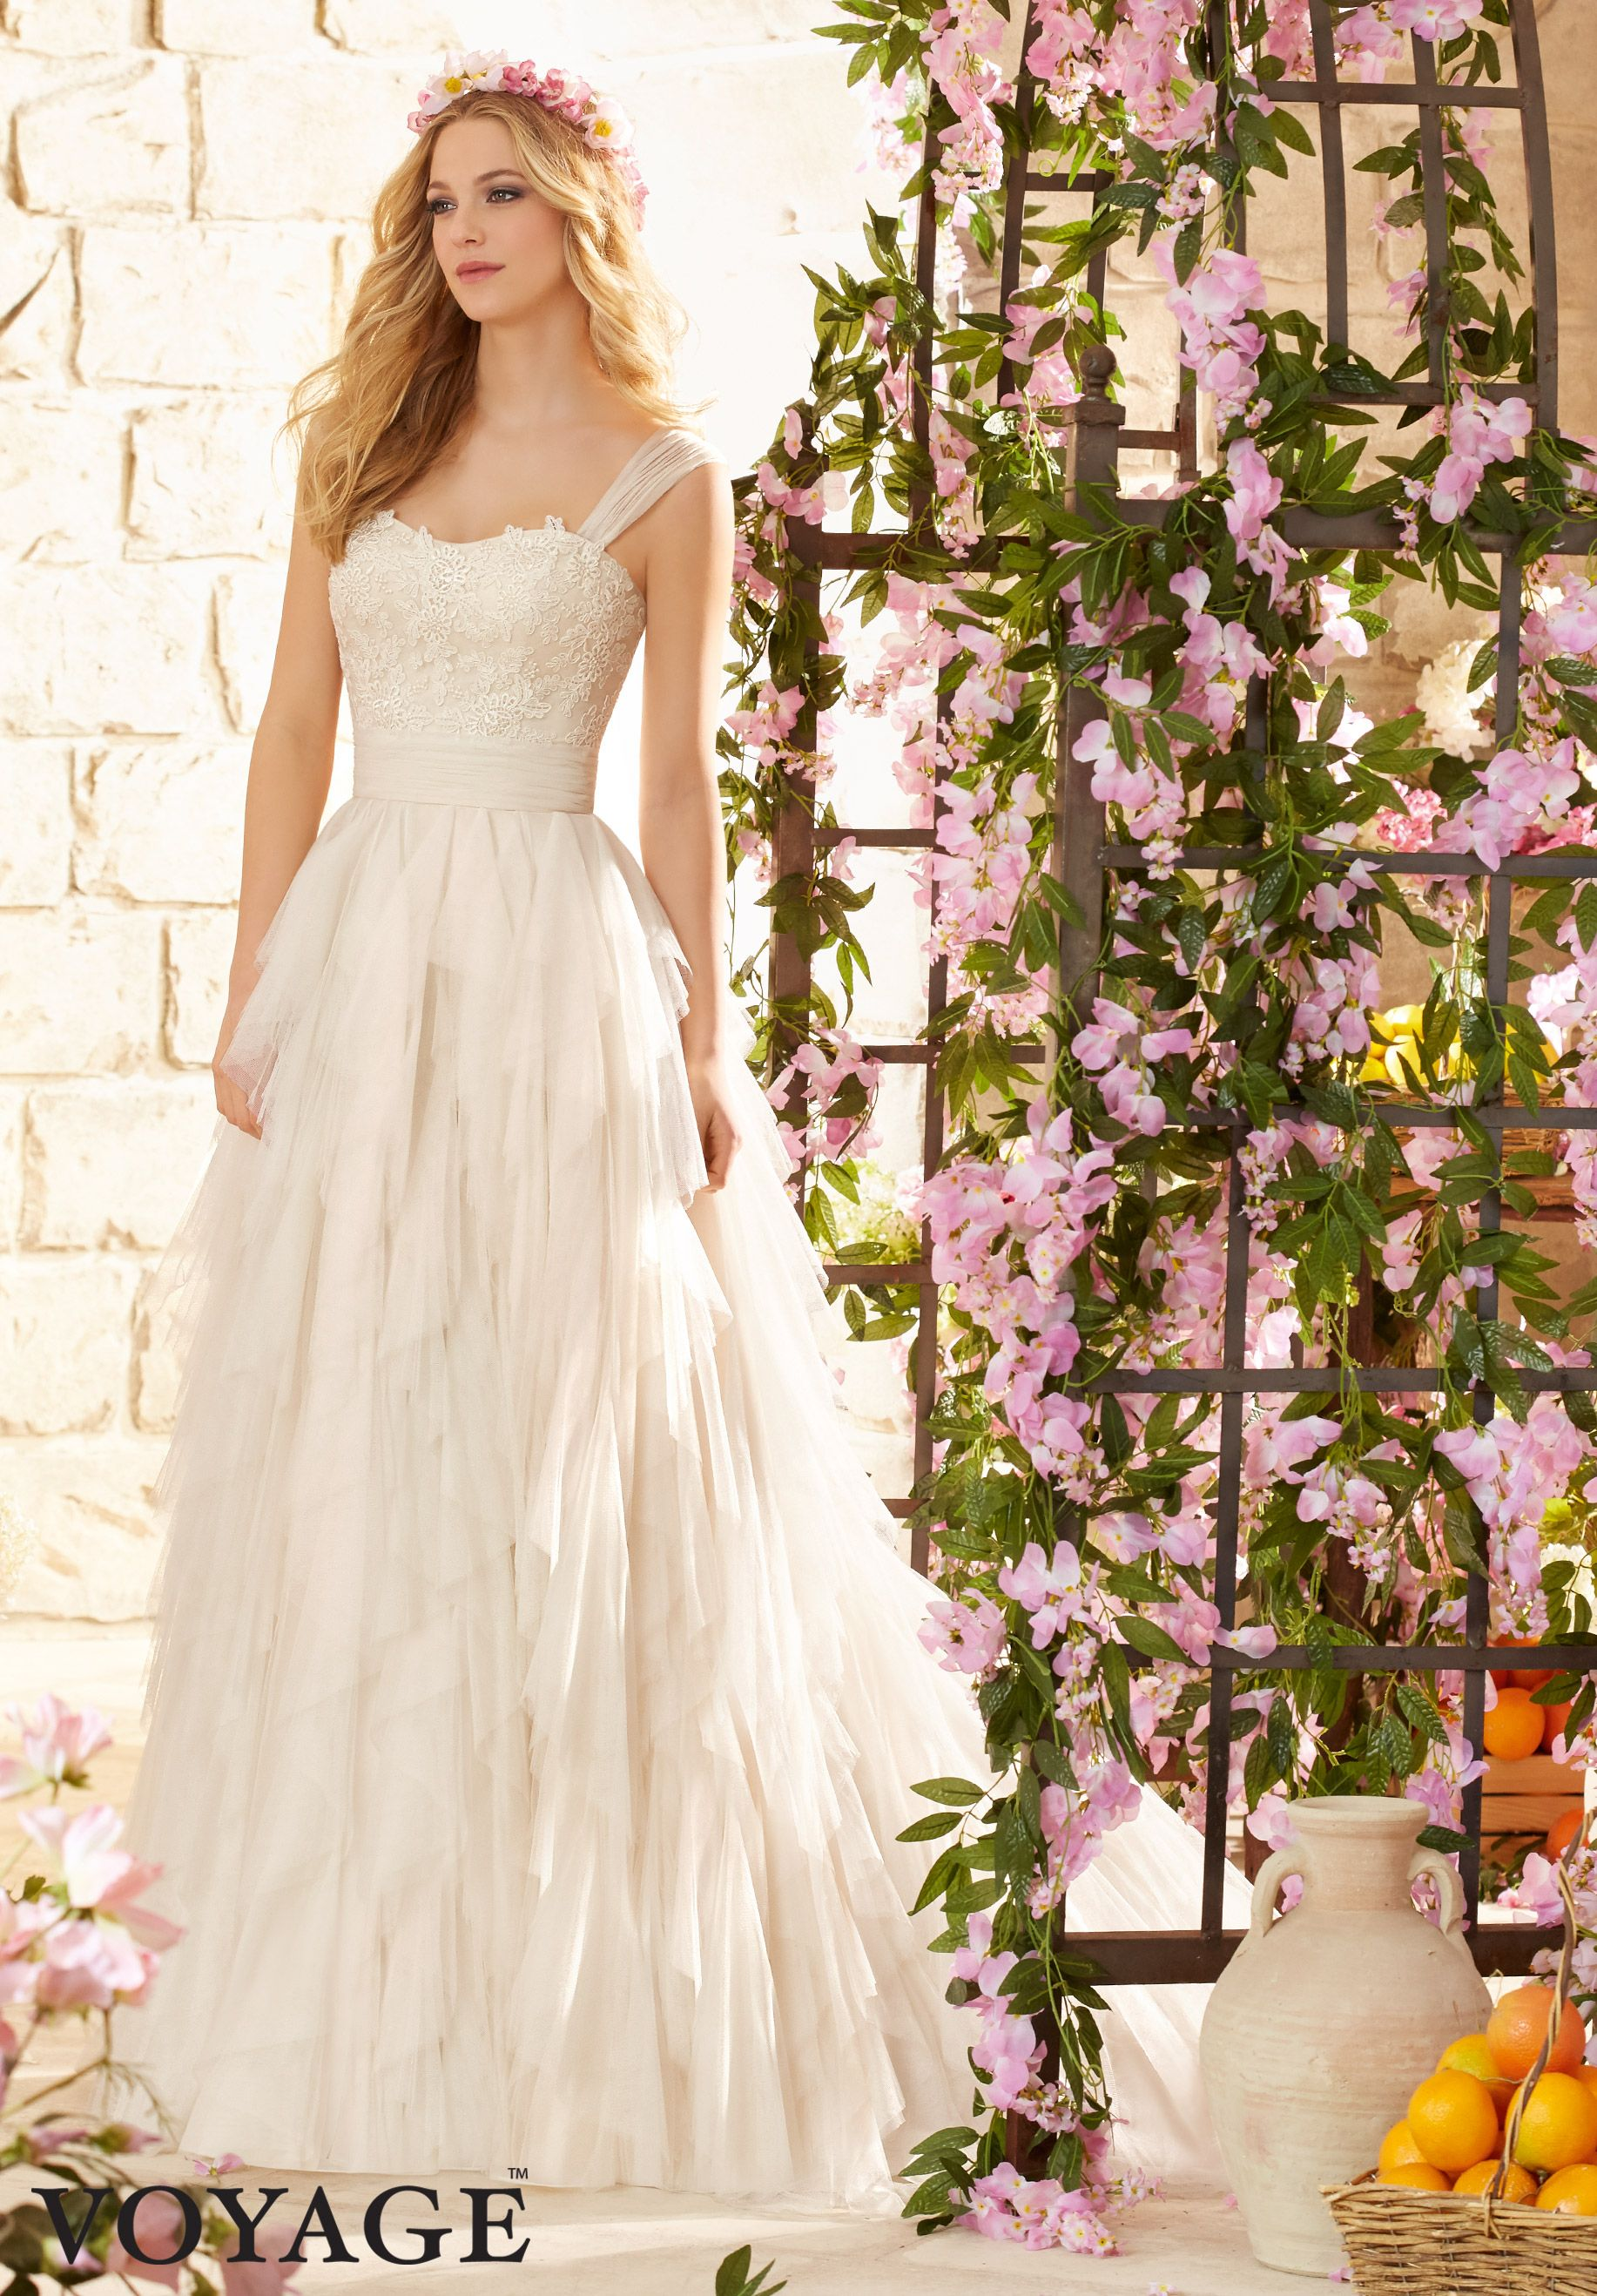 Color embroidered wedding dress  Wedding Dresses By Voyage featuring Embroidered Lace Appliques on